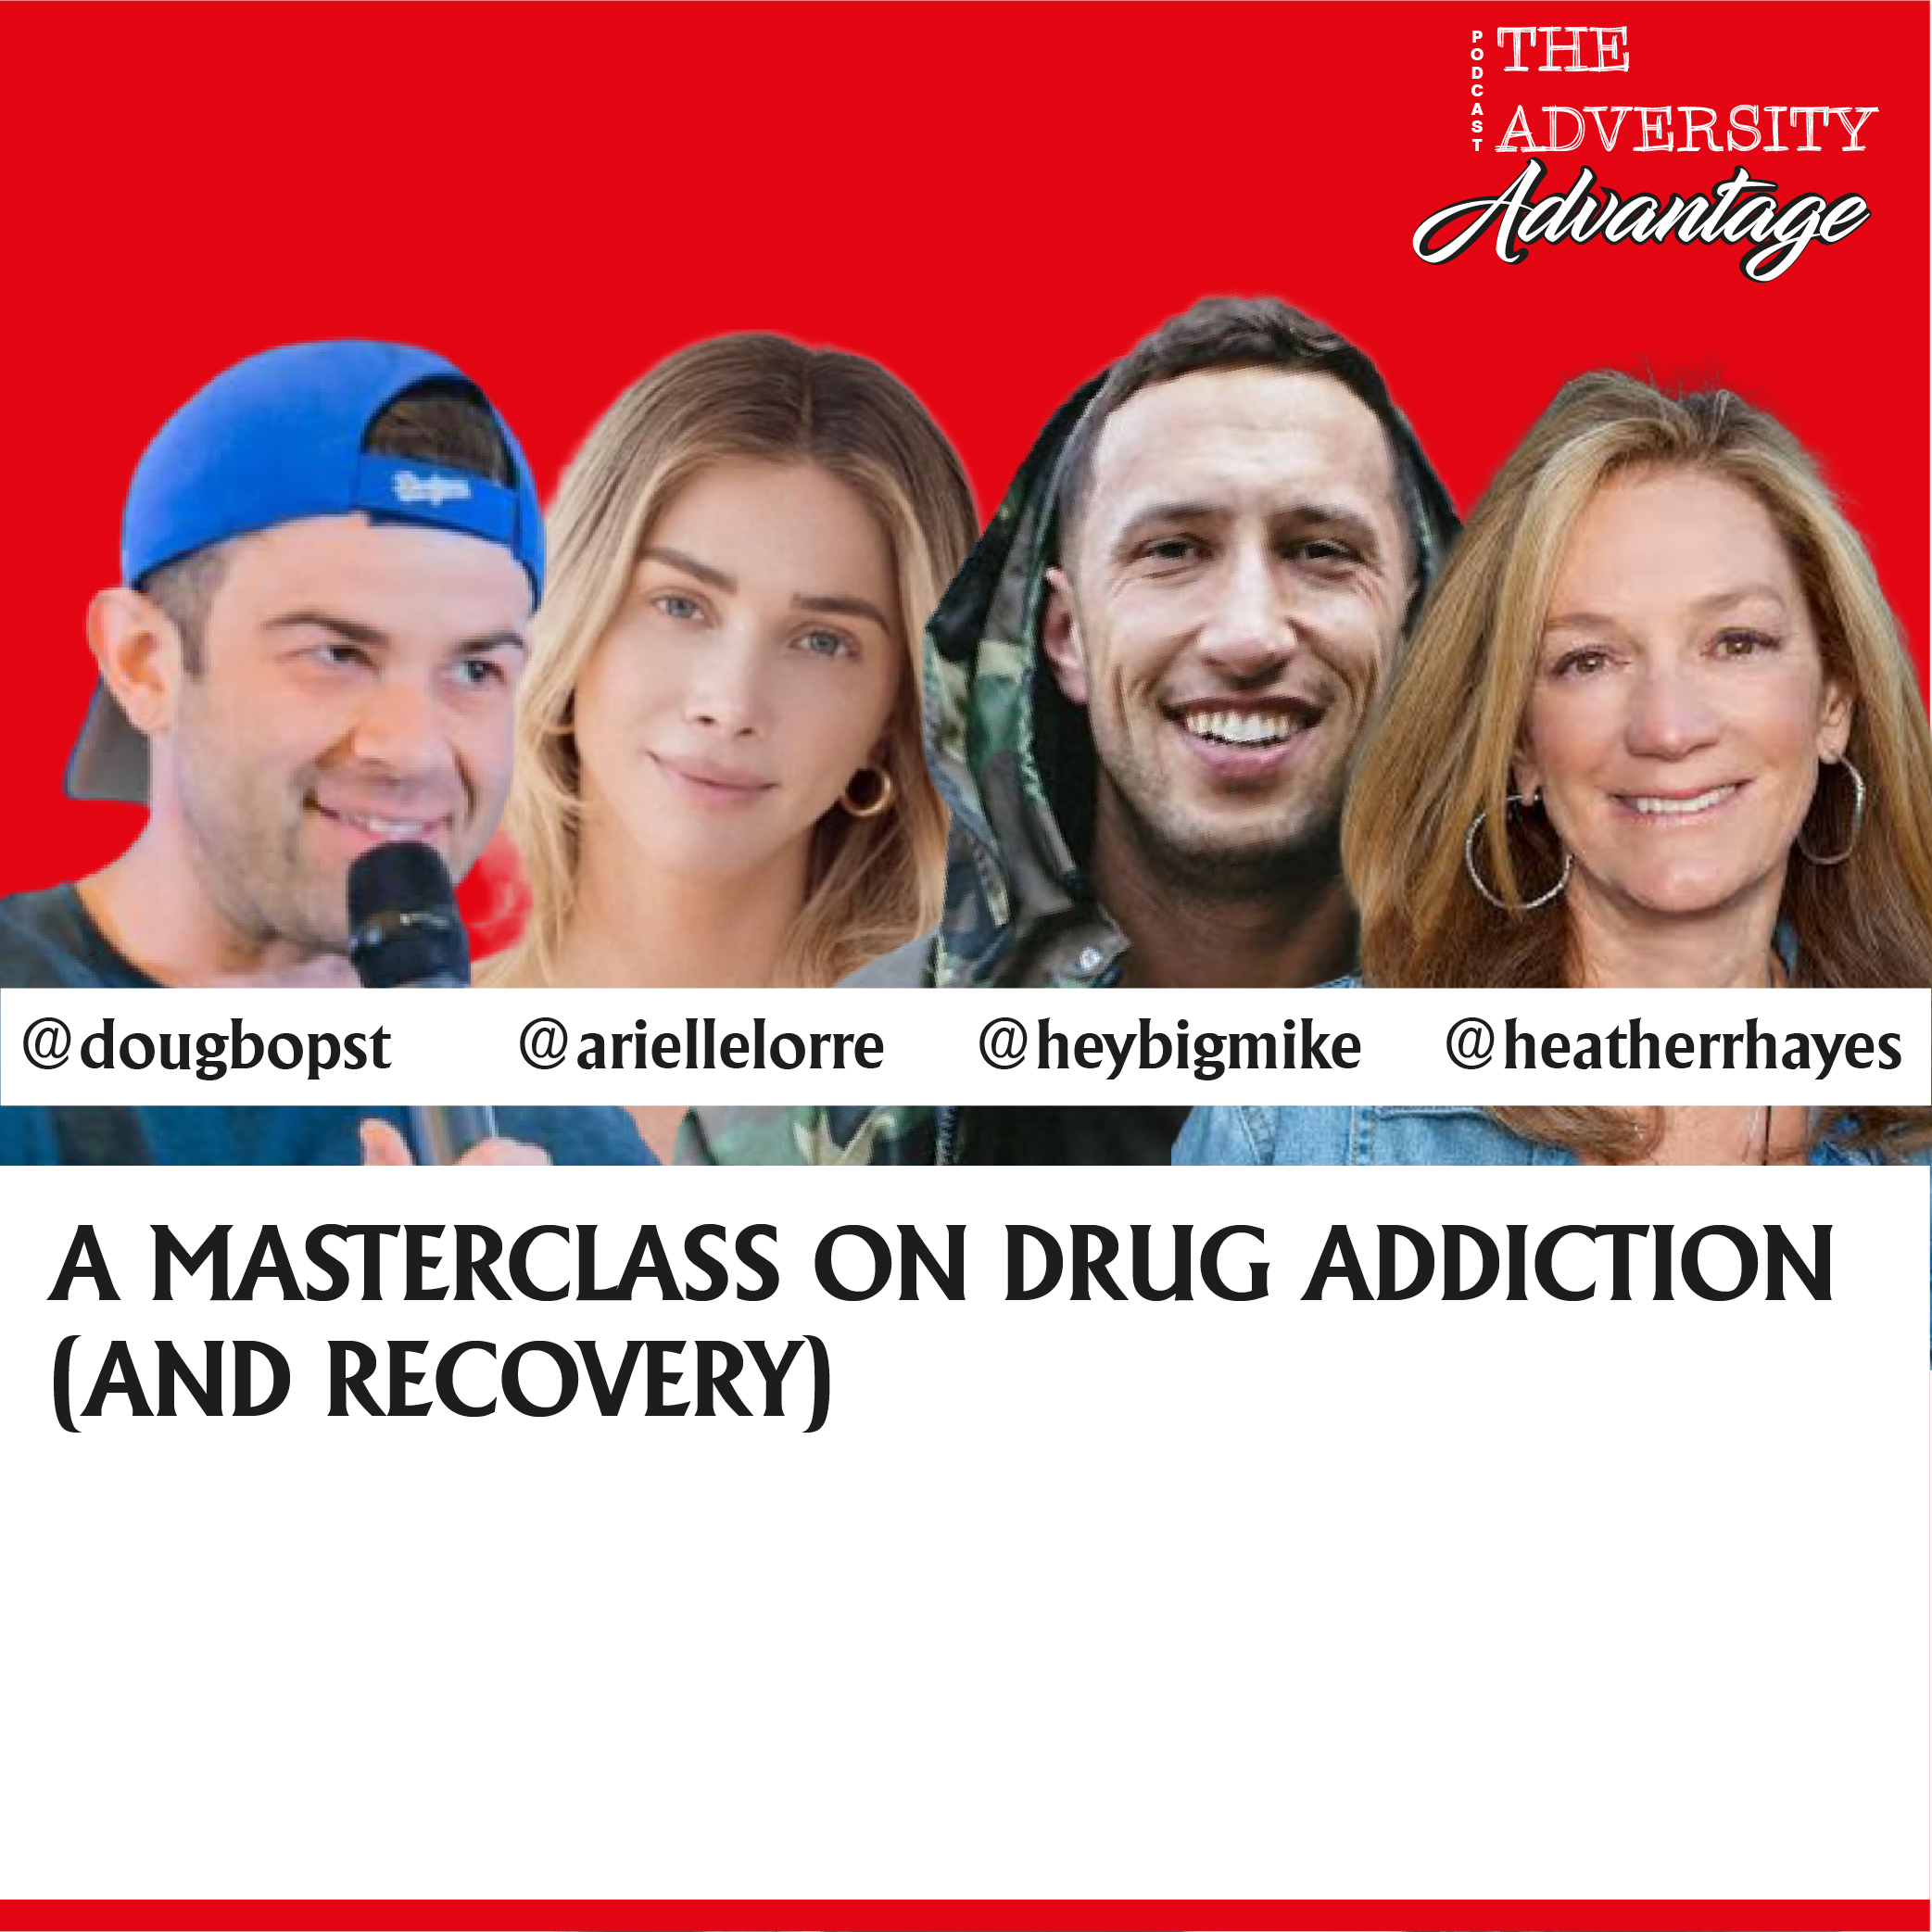 A Masterclass on Understanding Drug Addiction & How to Help an Addict Who's Struggling